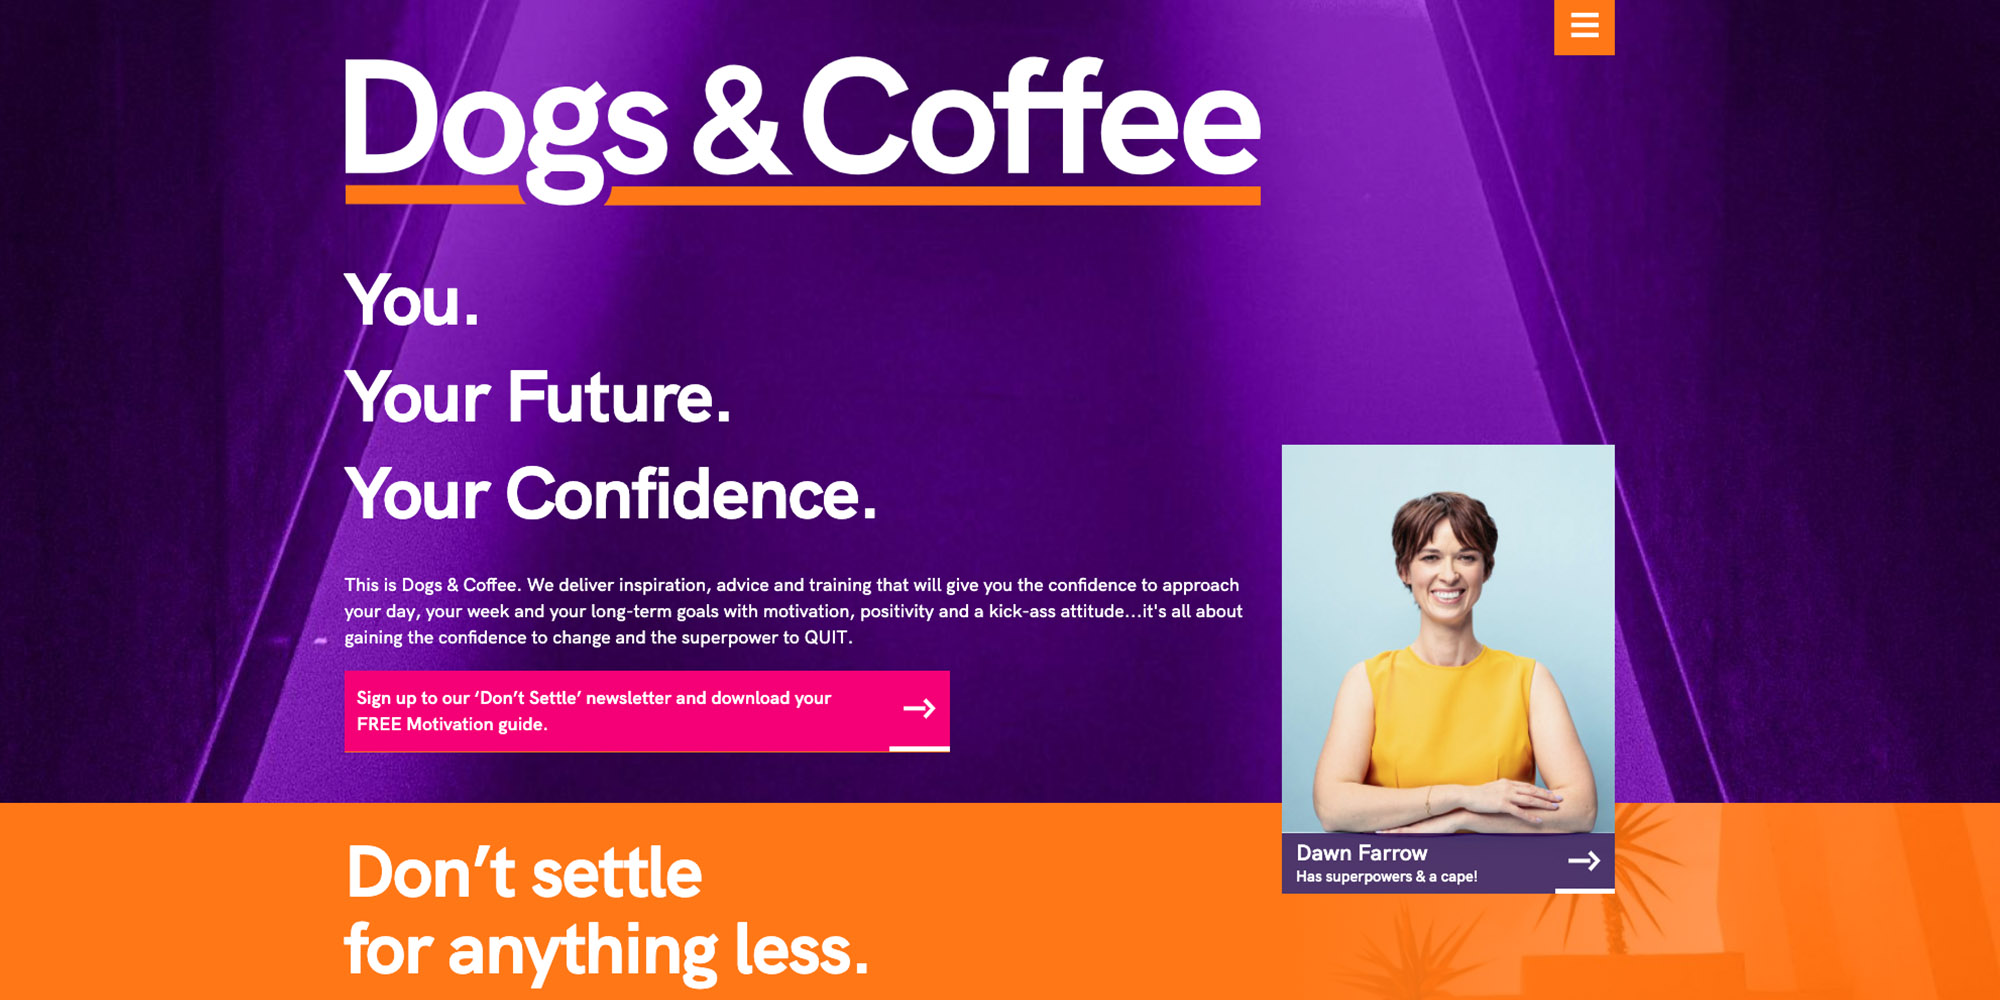 Dogs and Coffee website image